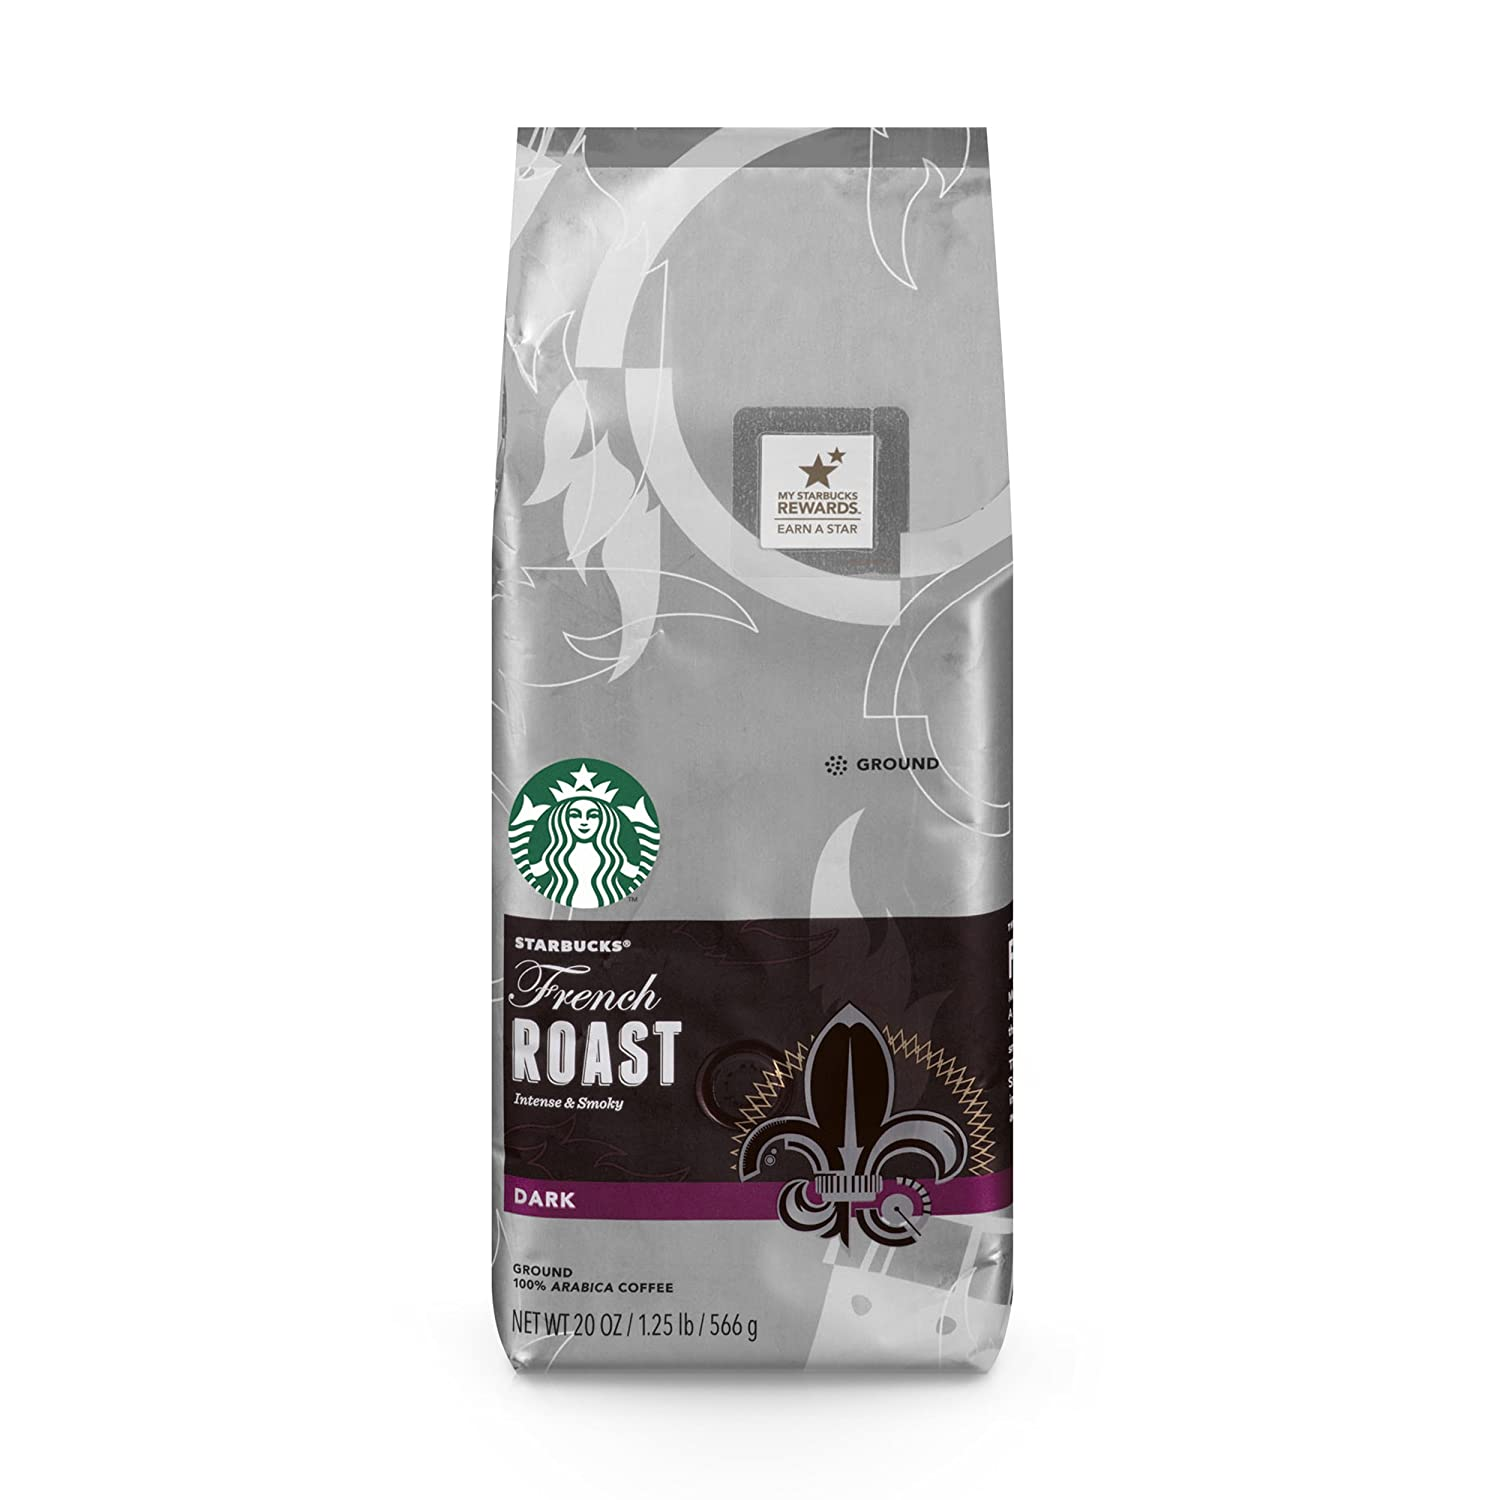 Starbucks Caffè Verona Dark Roast Ground Coffee, 28-ounce bag Starbucks Coffee